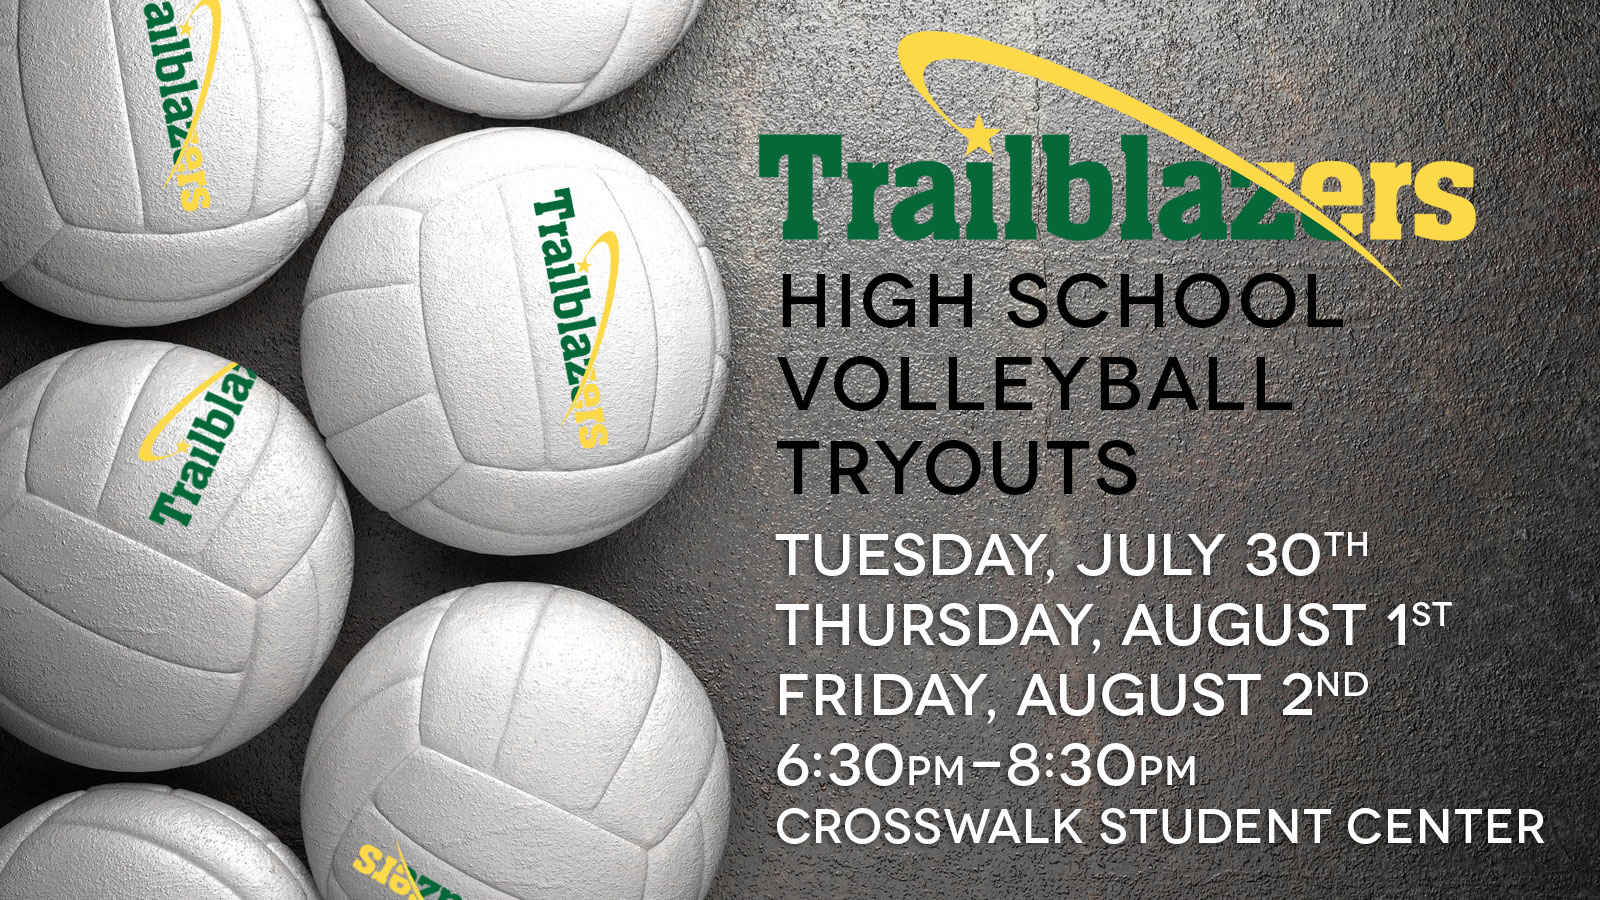 HS Volleyball Tryouts